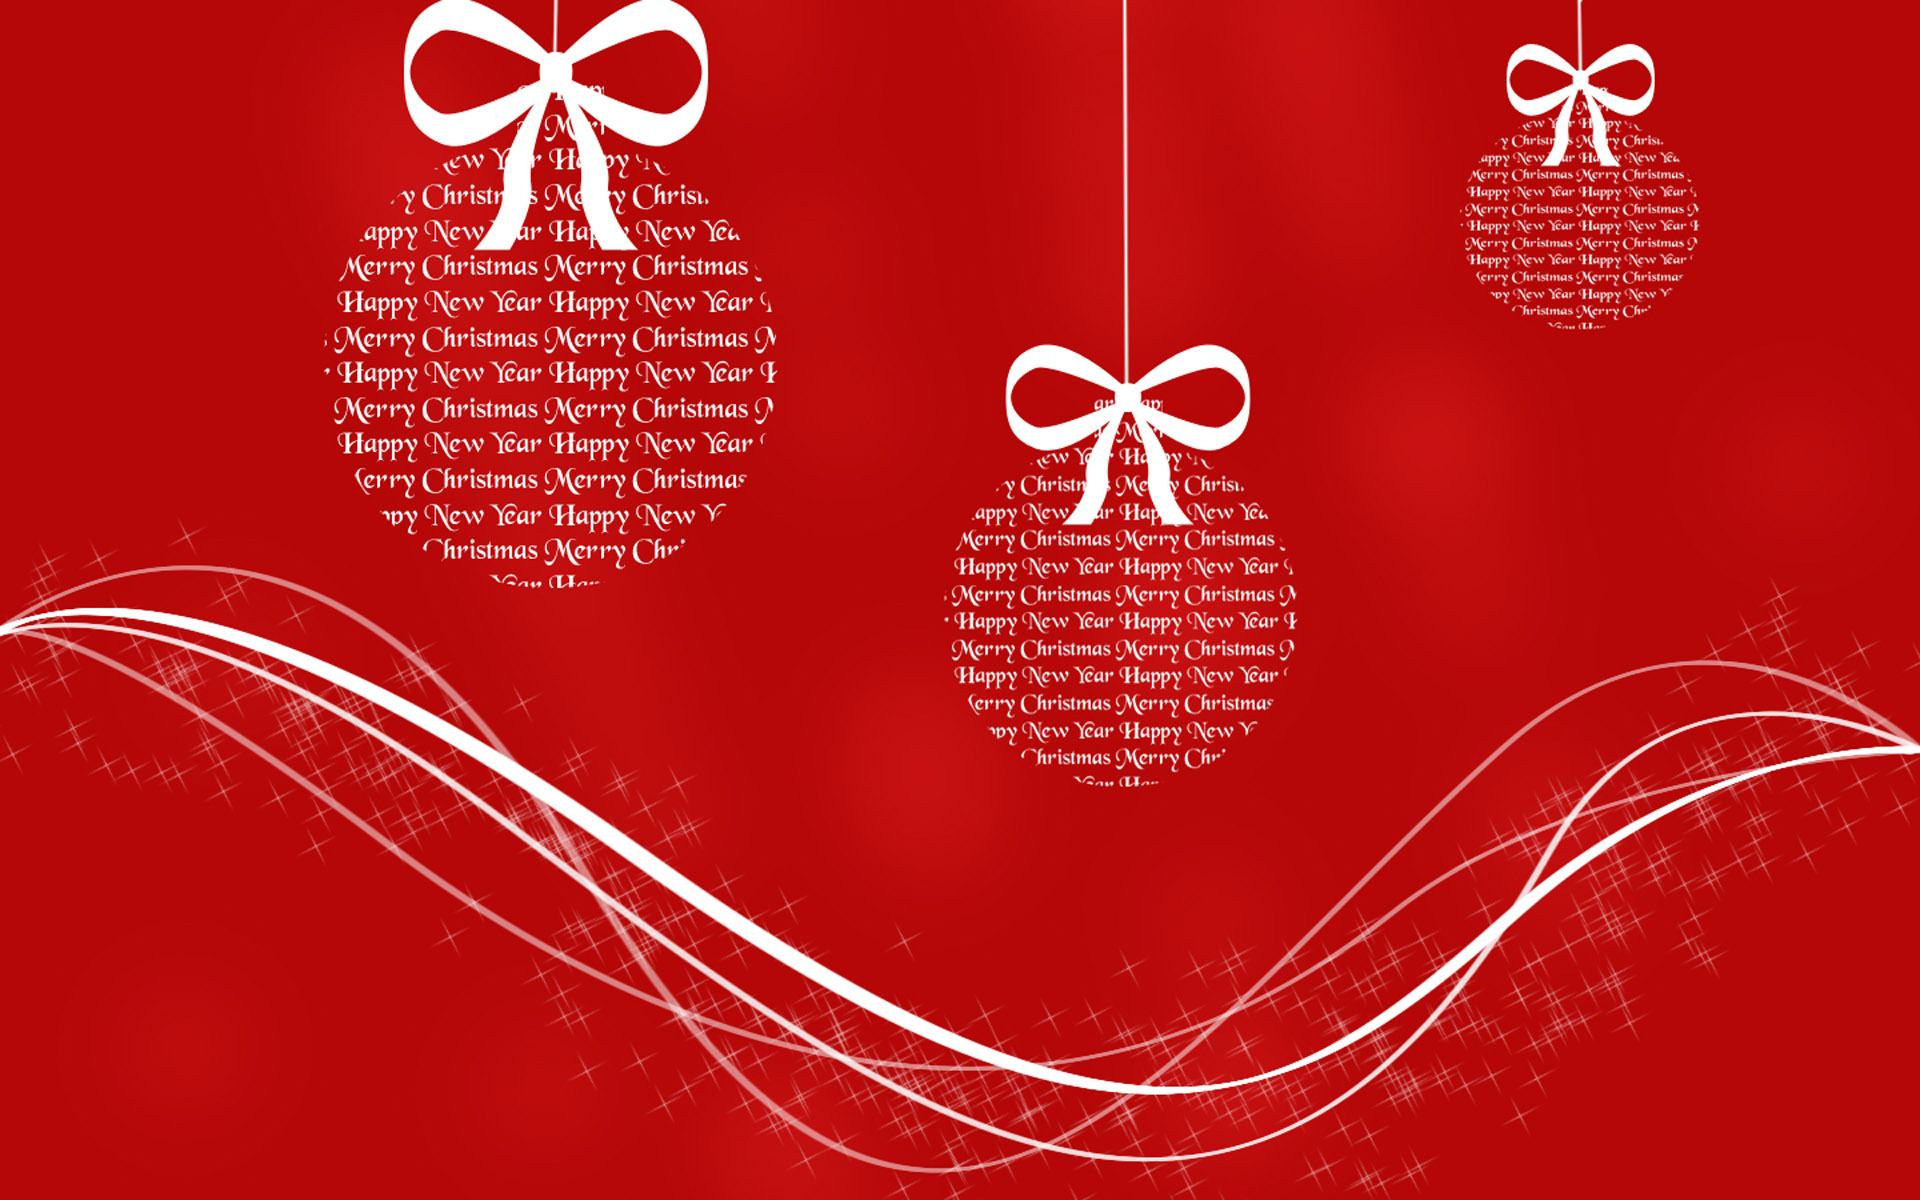 Christmas Wallpaper 20434